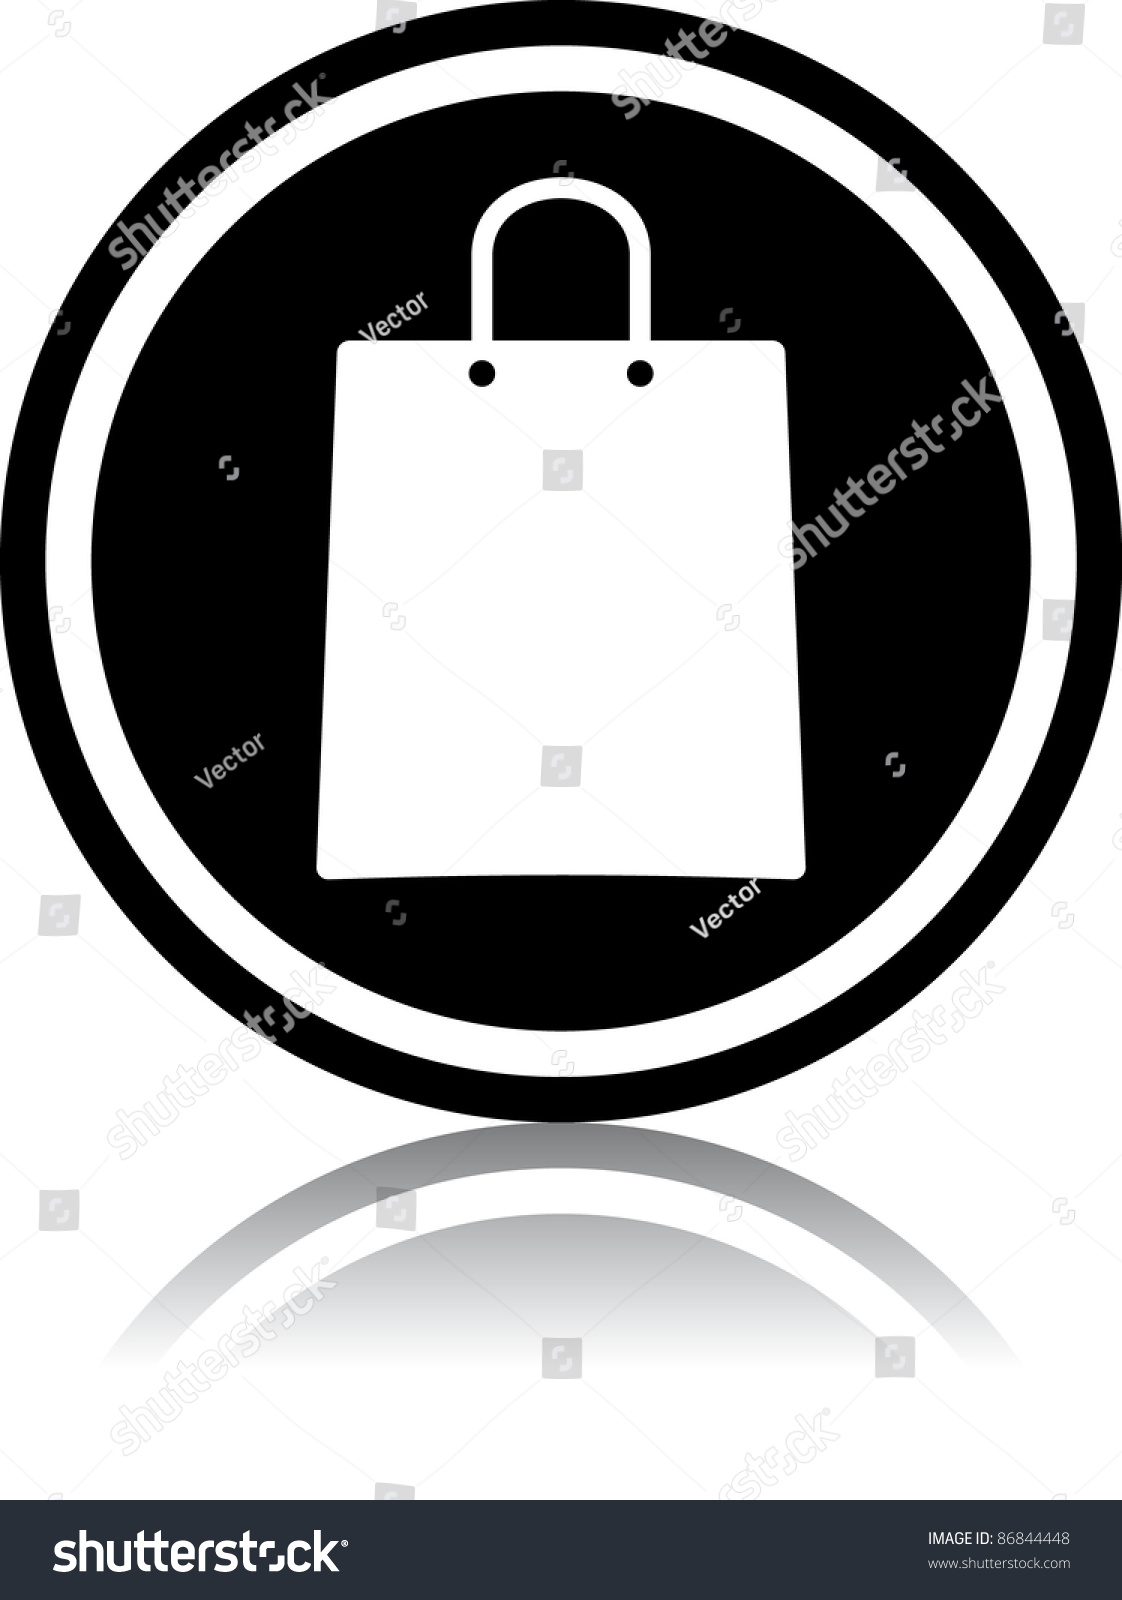 Vector Shopping Bag Icon Stock Vector 86844448 - Shutterstock